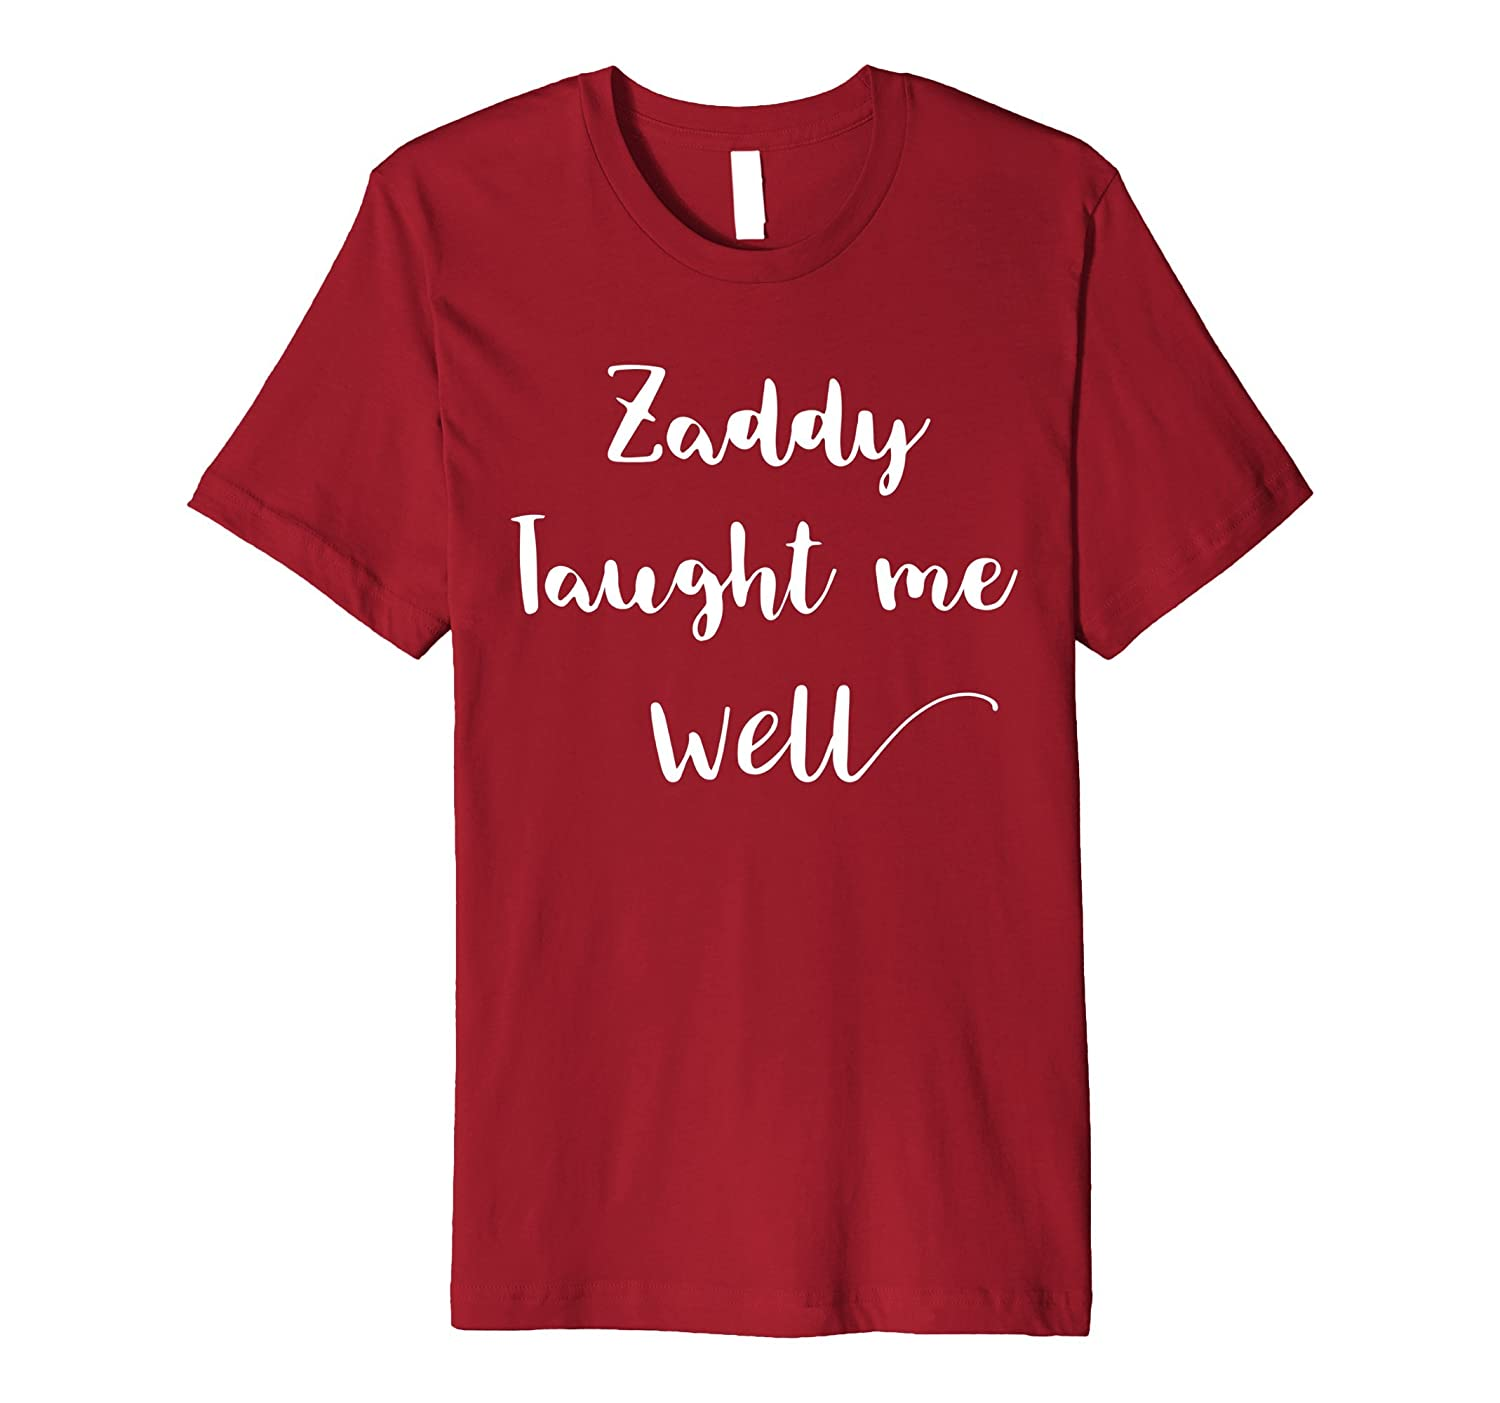 Zaddy taught me well t-shirt